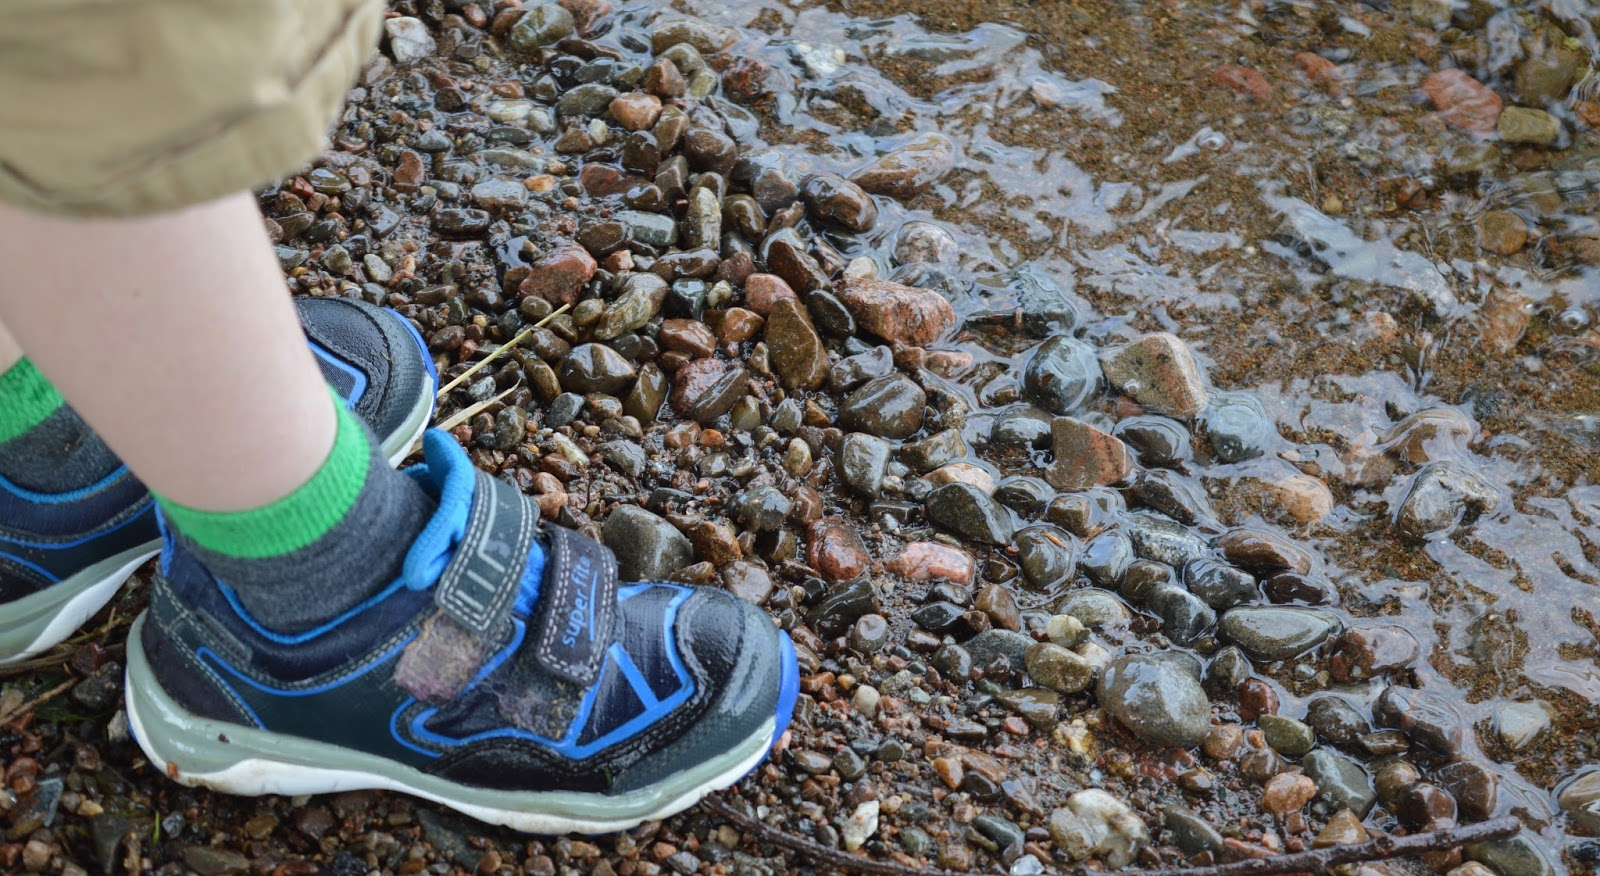 Paddling in Loch Ness and keeping our feet dry with GORE-TEX shoes